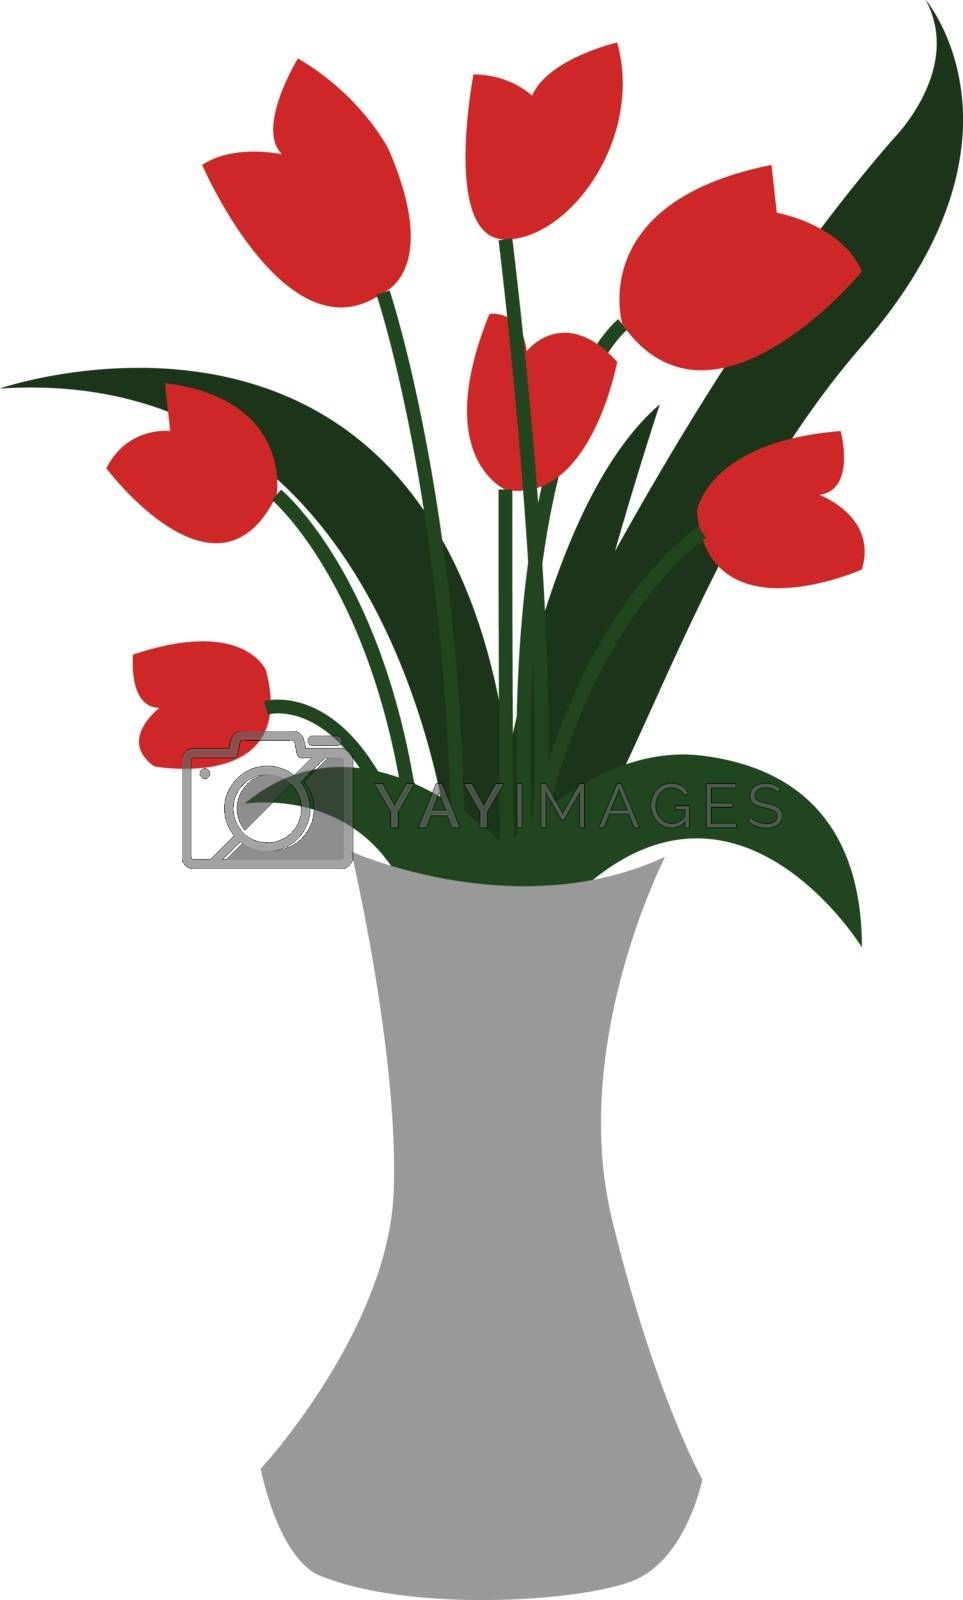 Royalty free image of Clipart of a white-colored flower vase displaying red flowers an by Morphart